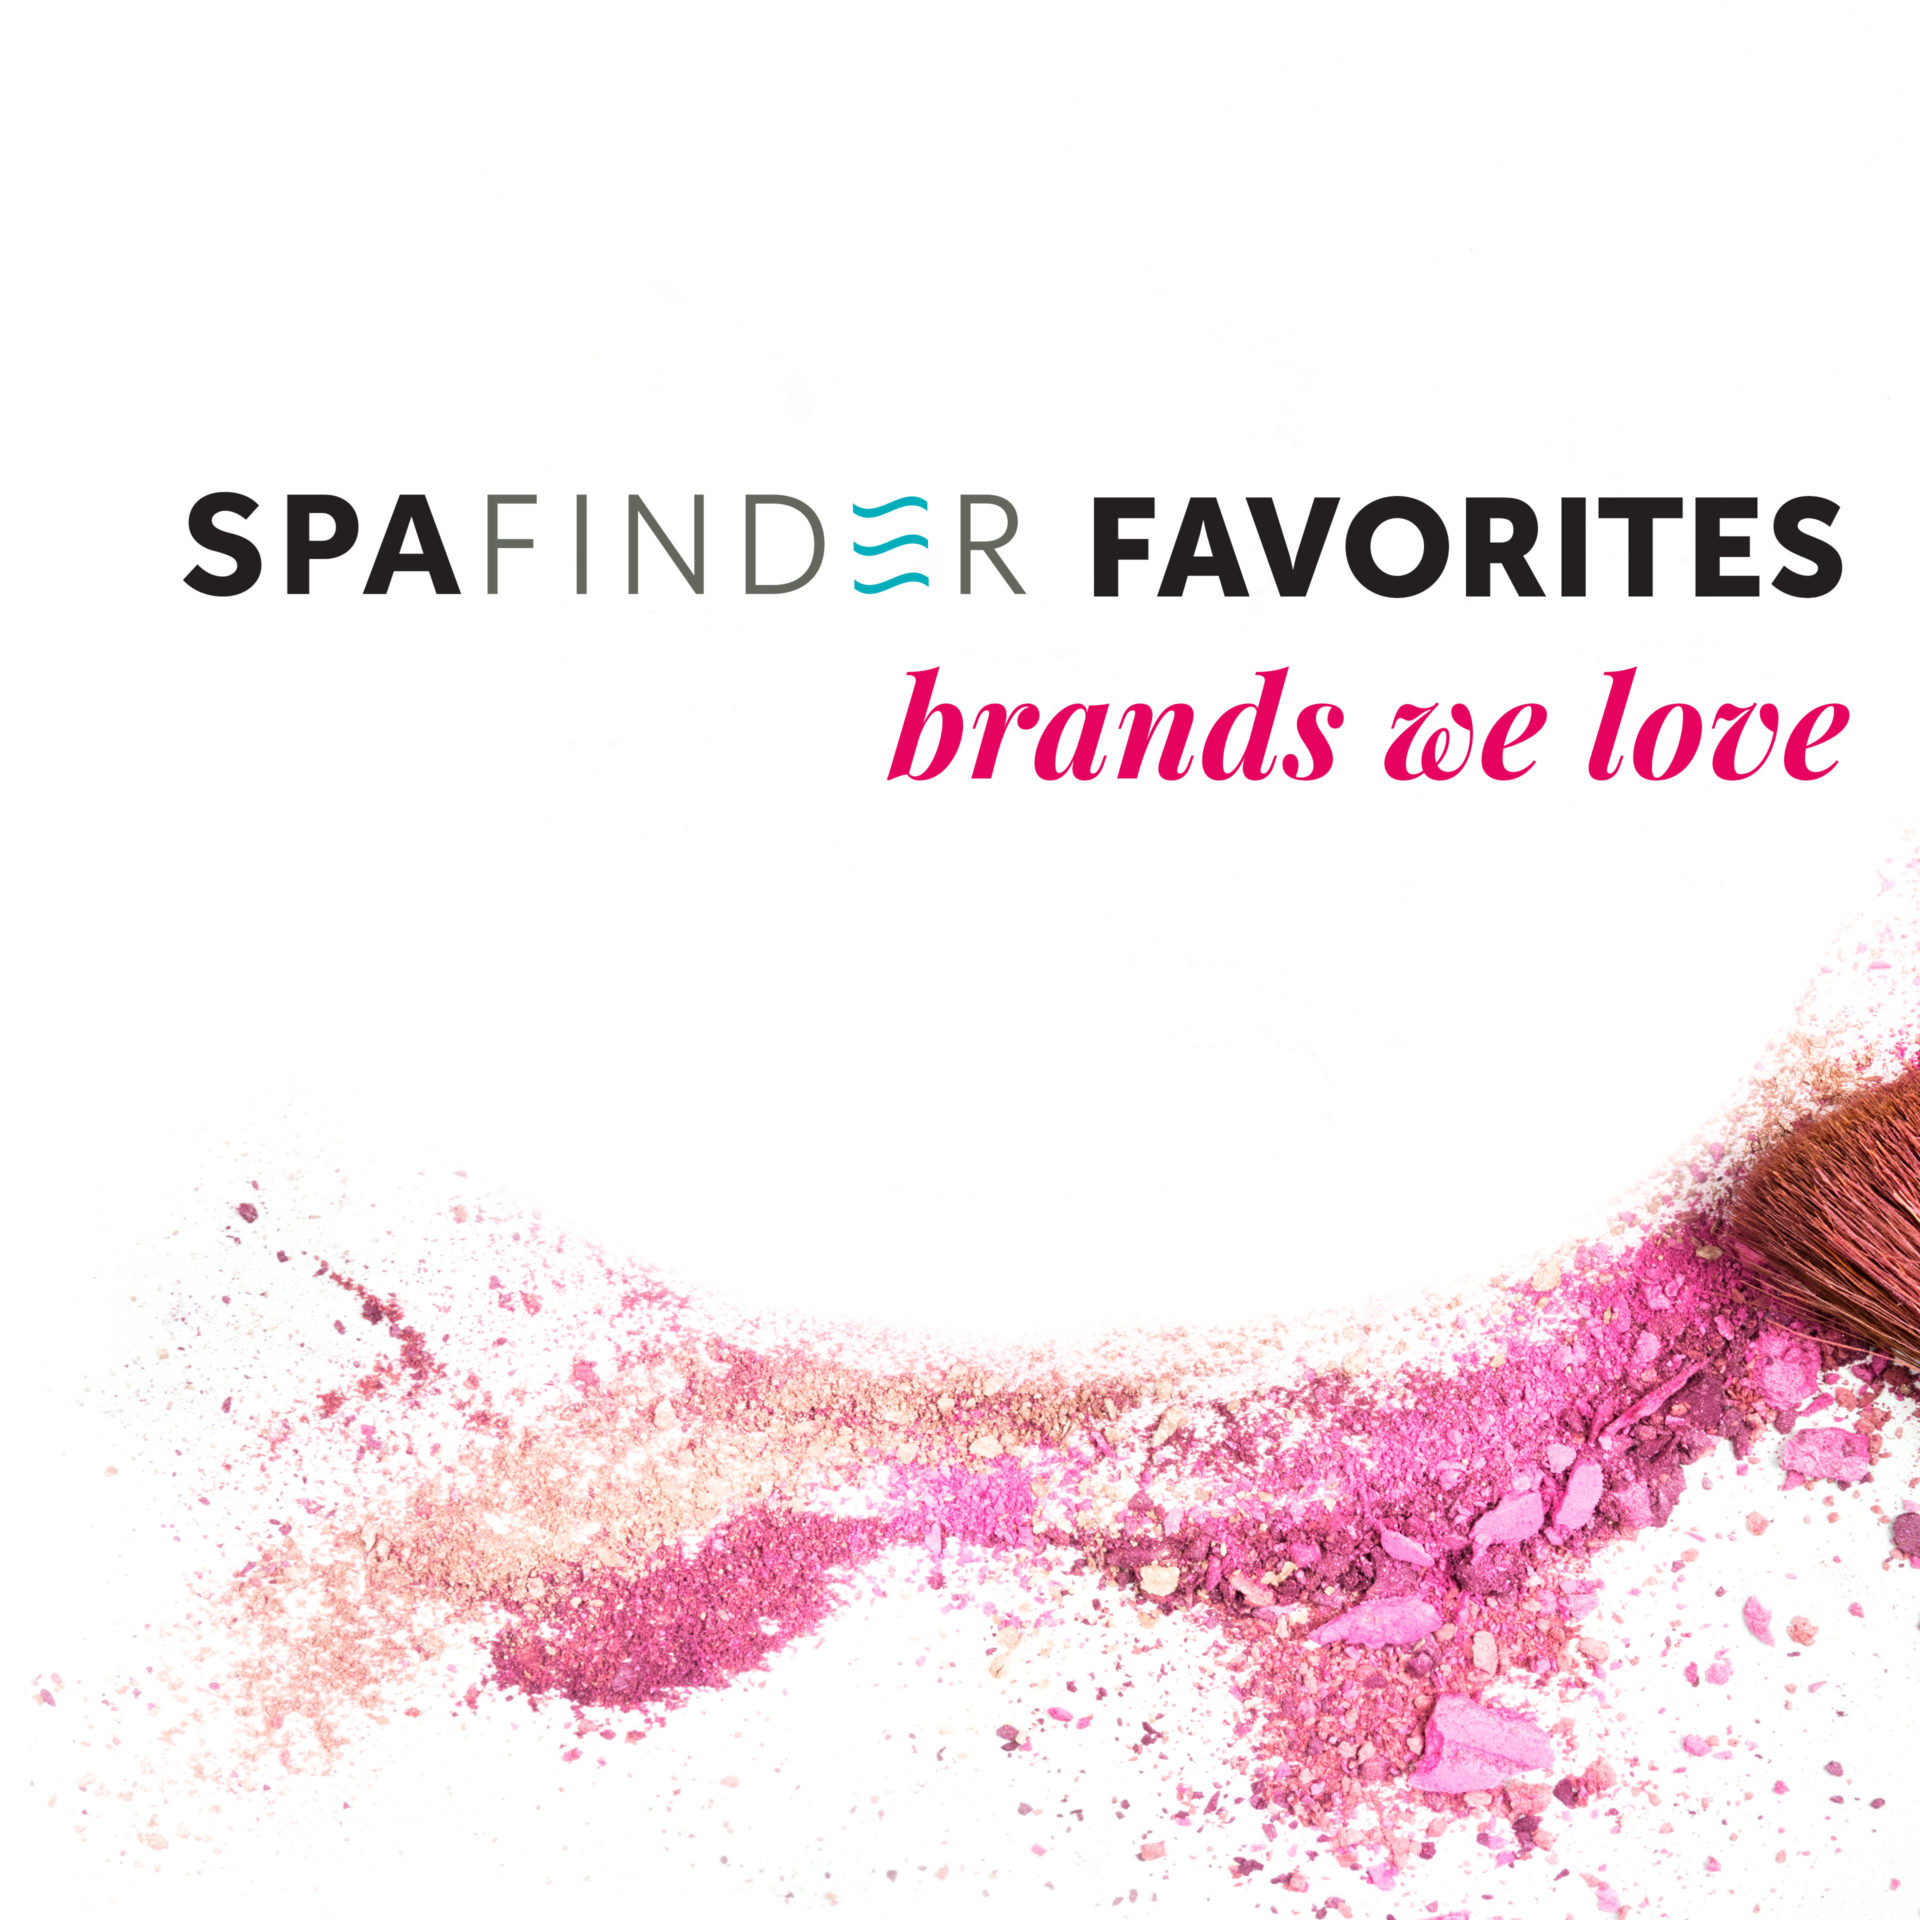 May brands we love